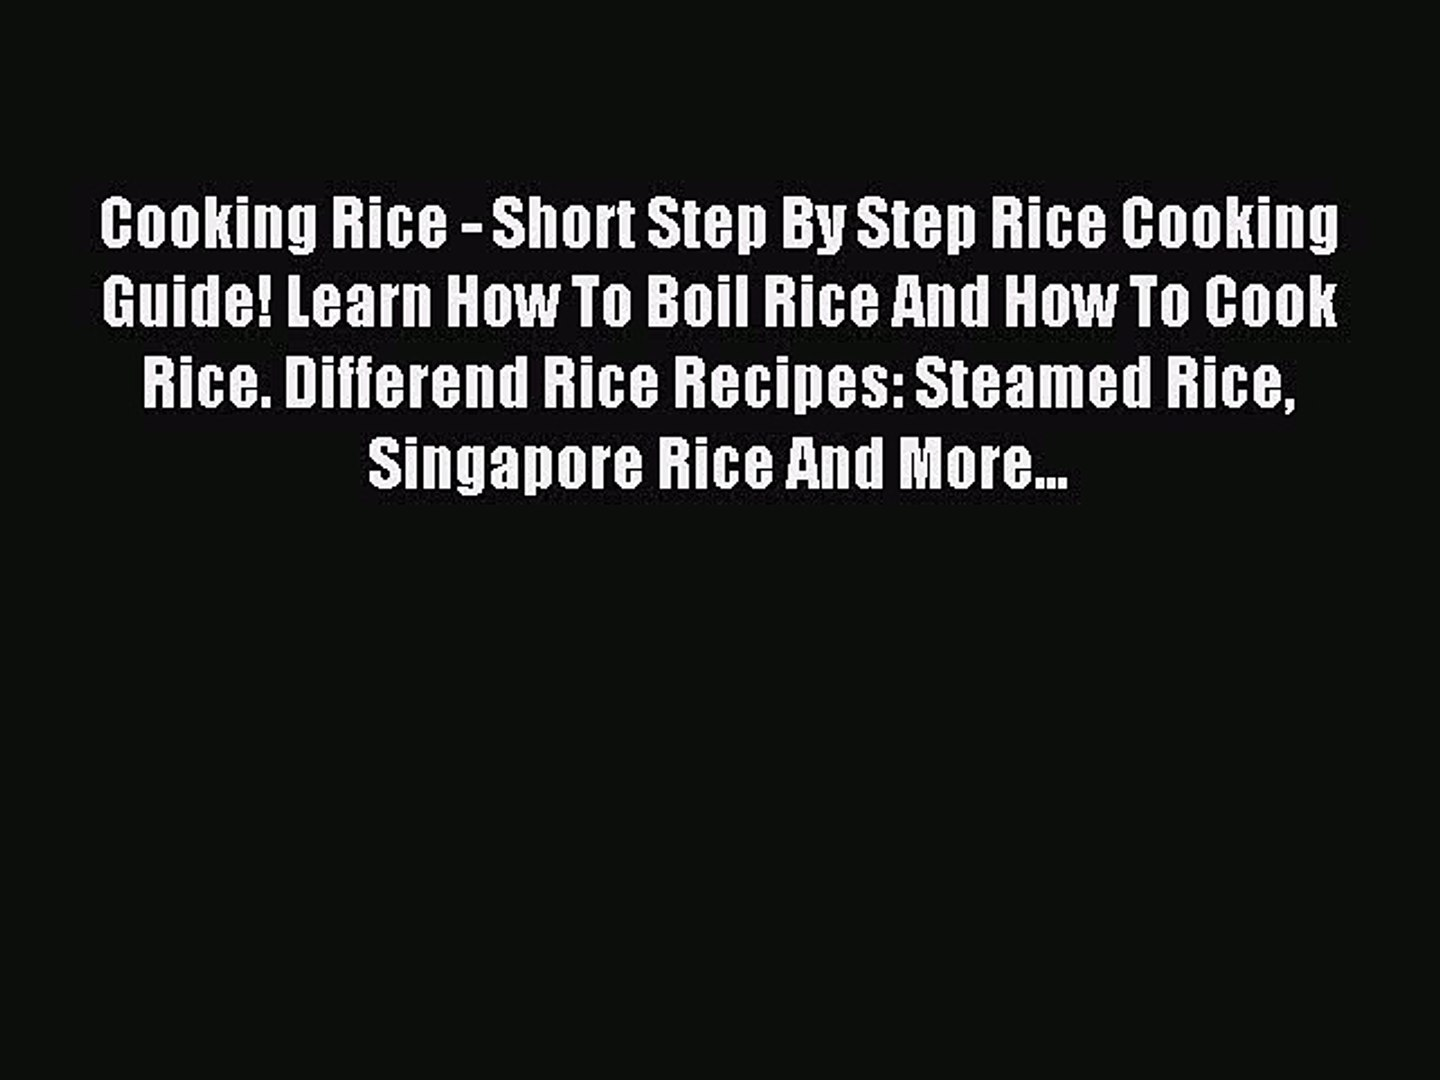 Download Cooking Rice - Short Step By Step Rice Cooking Guide! Learn How To Boil Rice And How